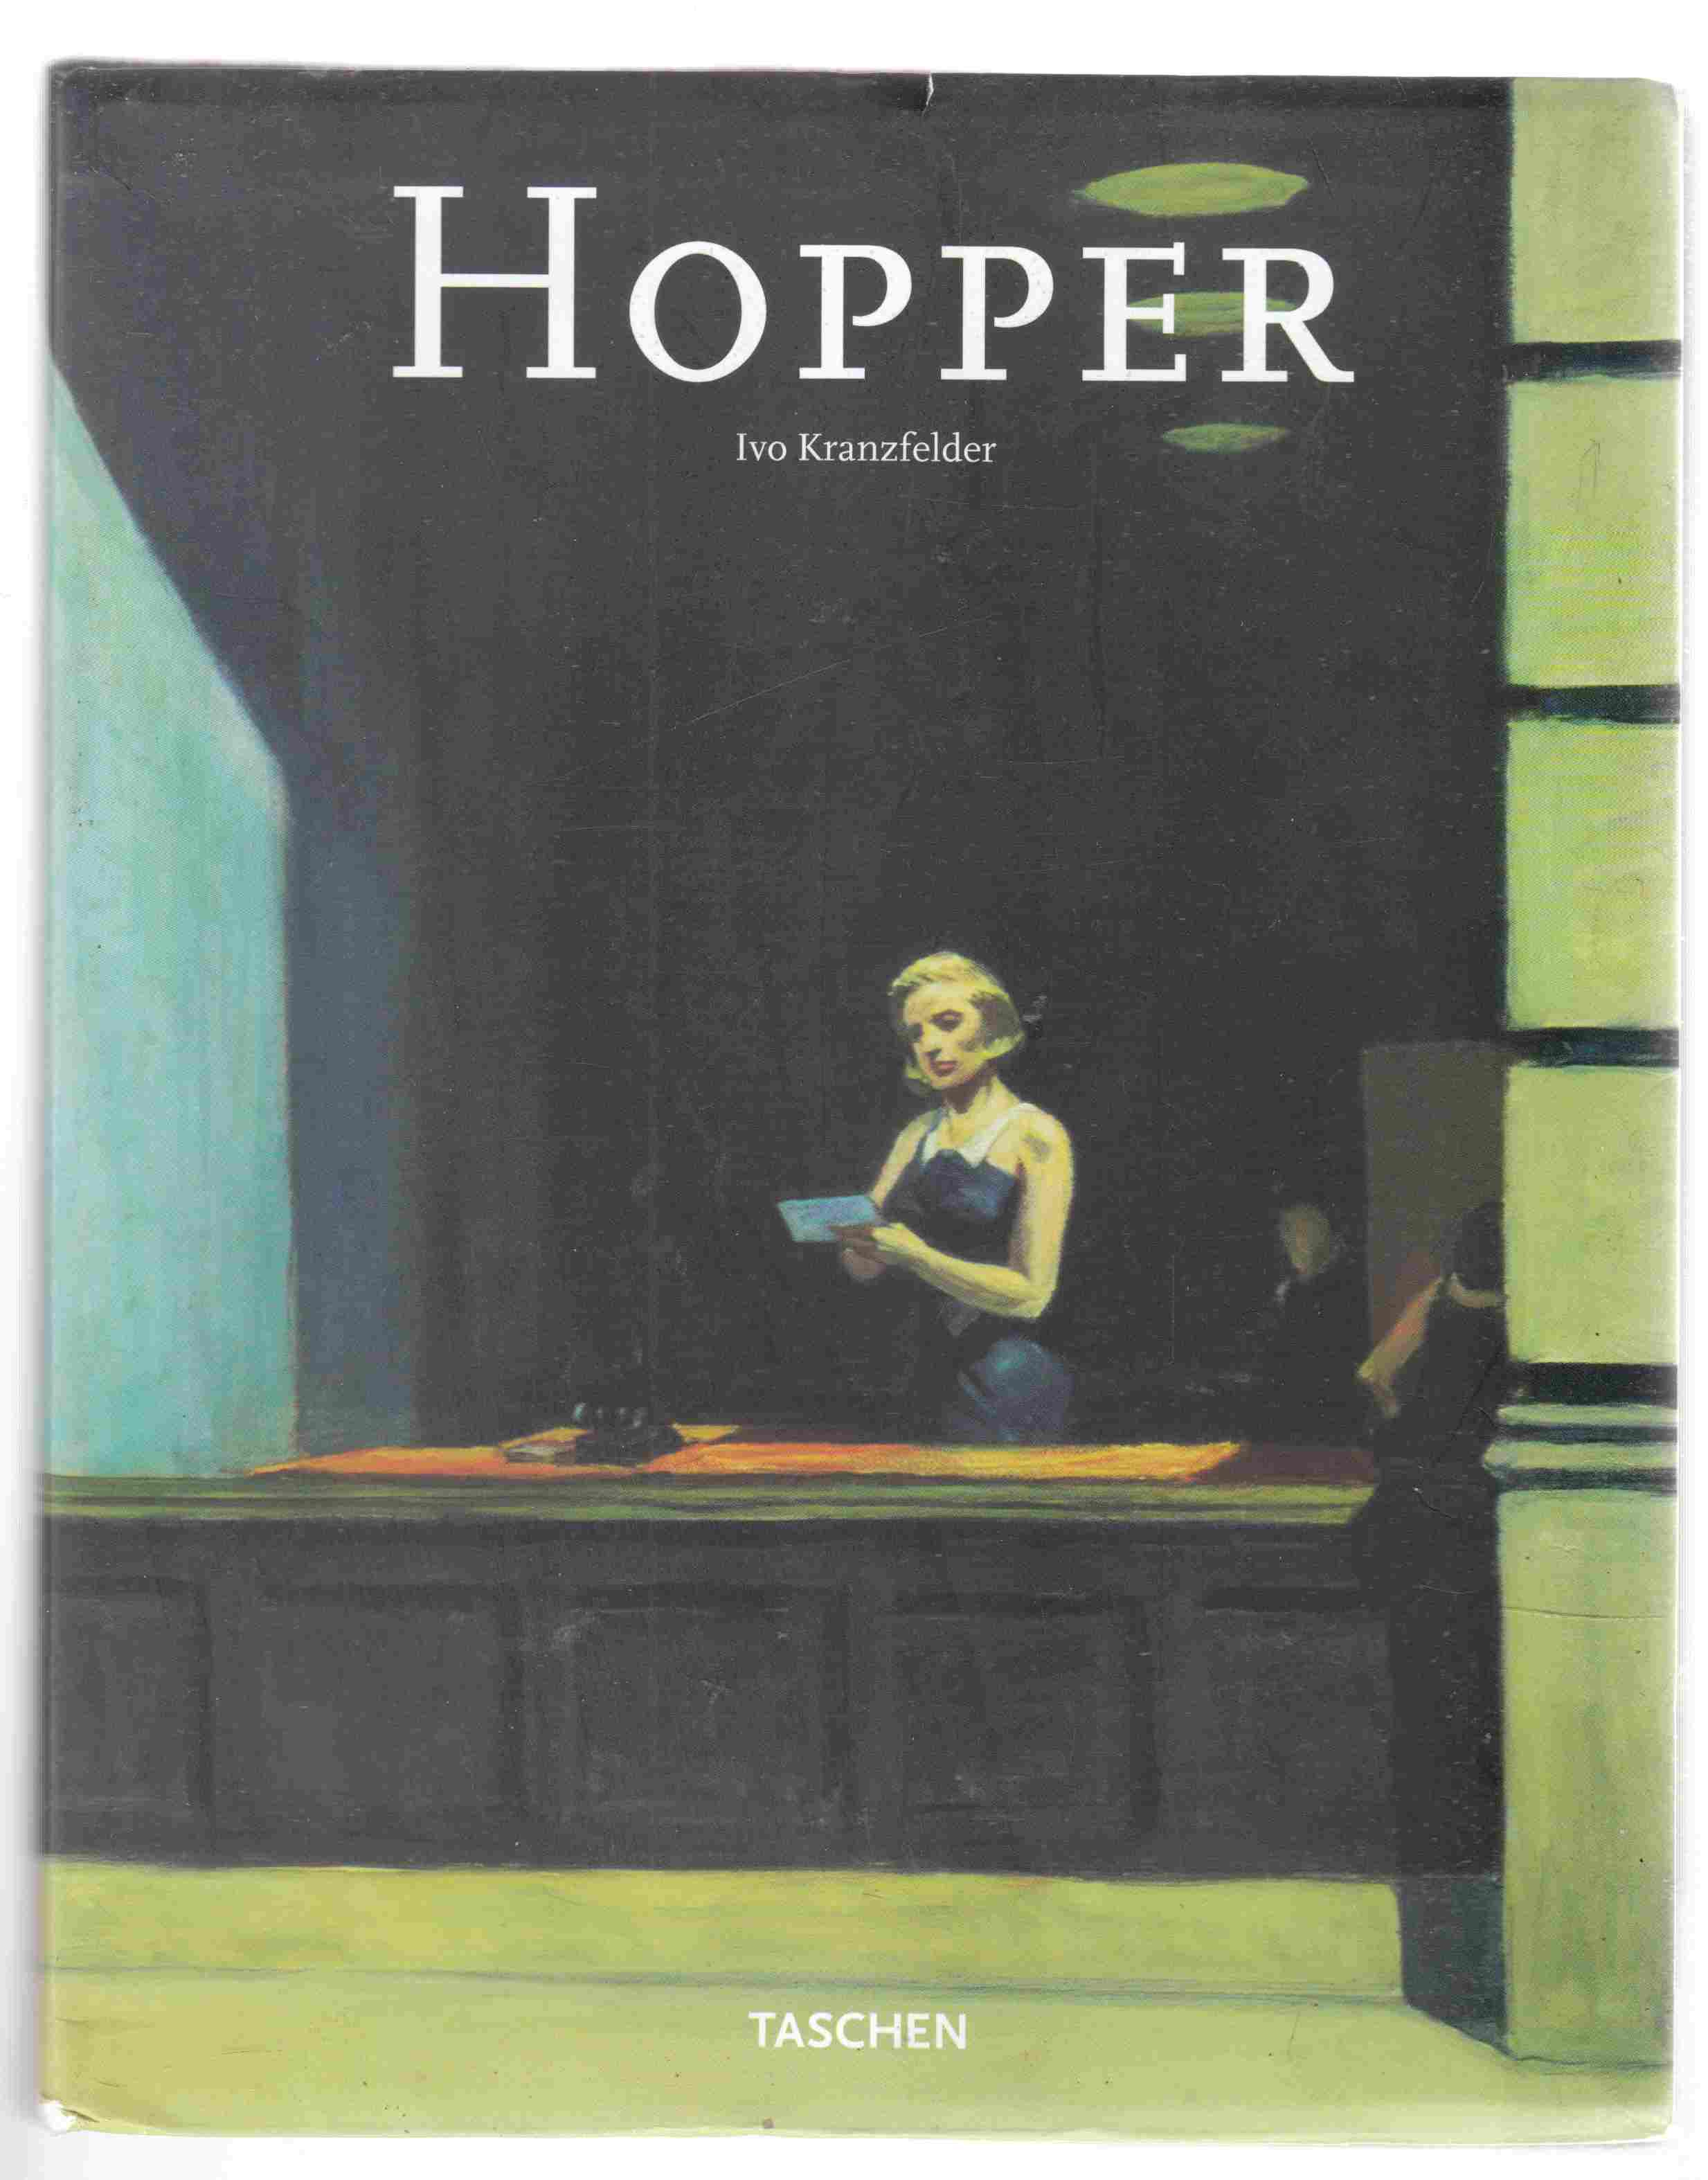 Image for Hopper 1882 - 1987 Vision of Reality